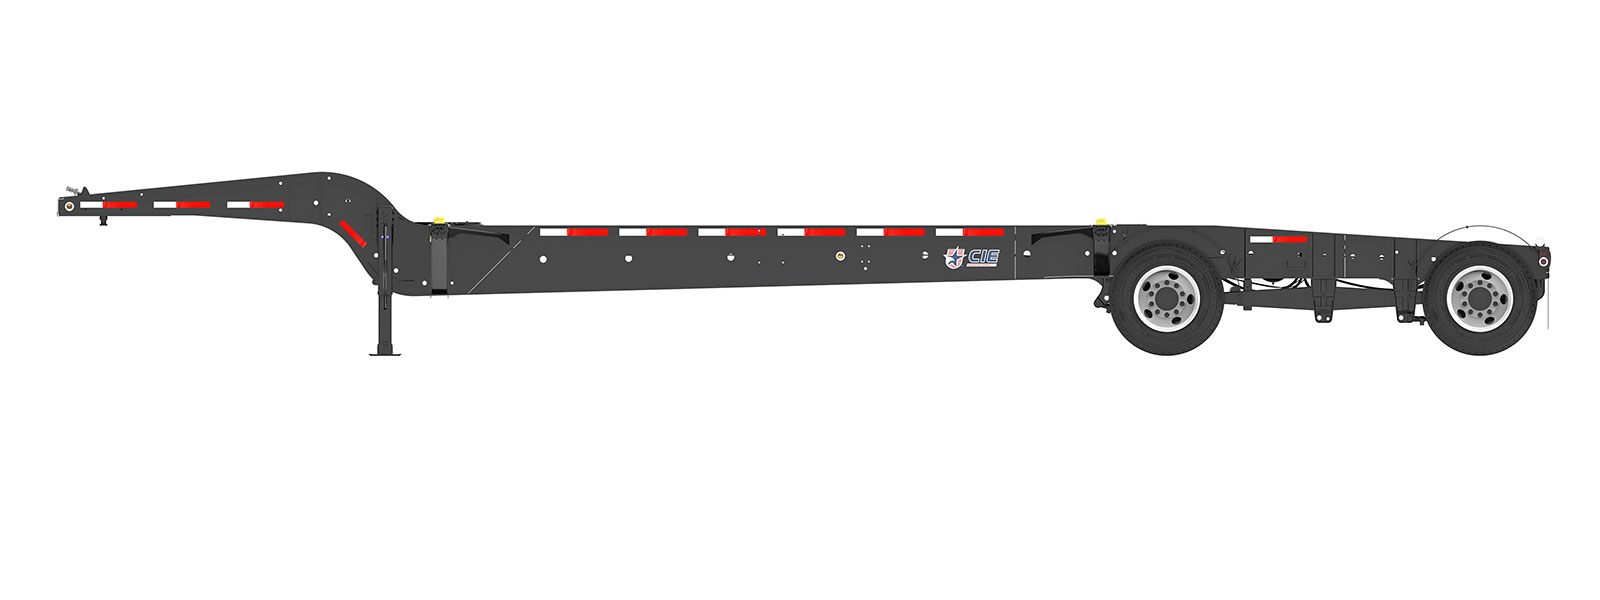 43' Drop Frame Tandem Tank Container Chassis Orthographic Side View Final